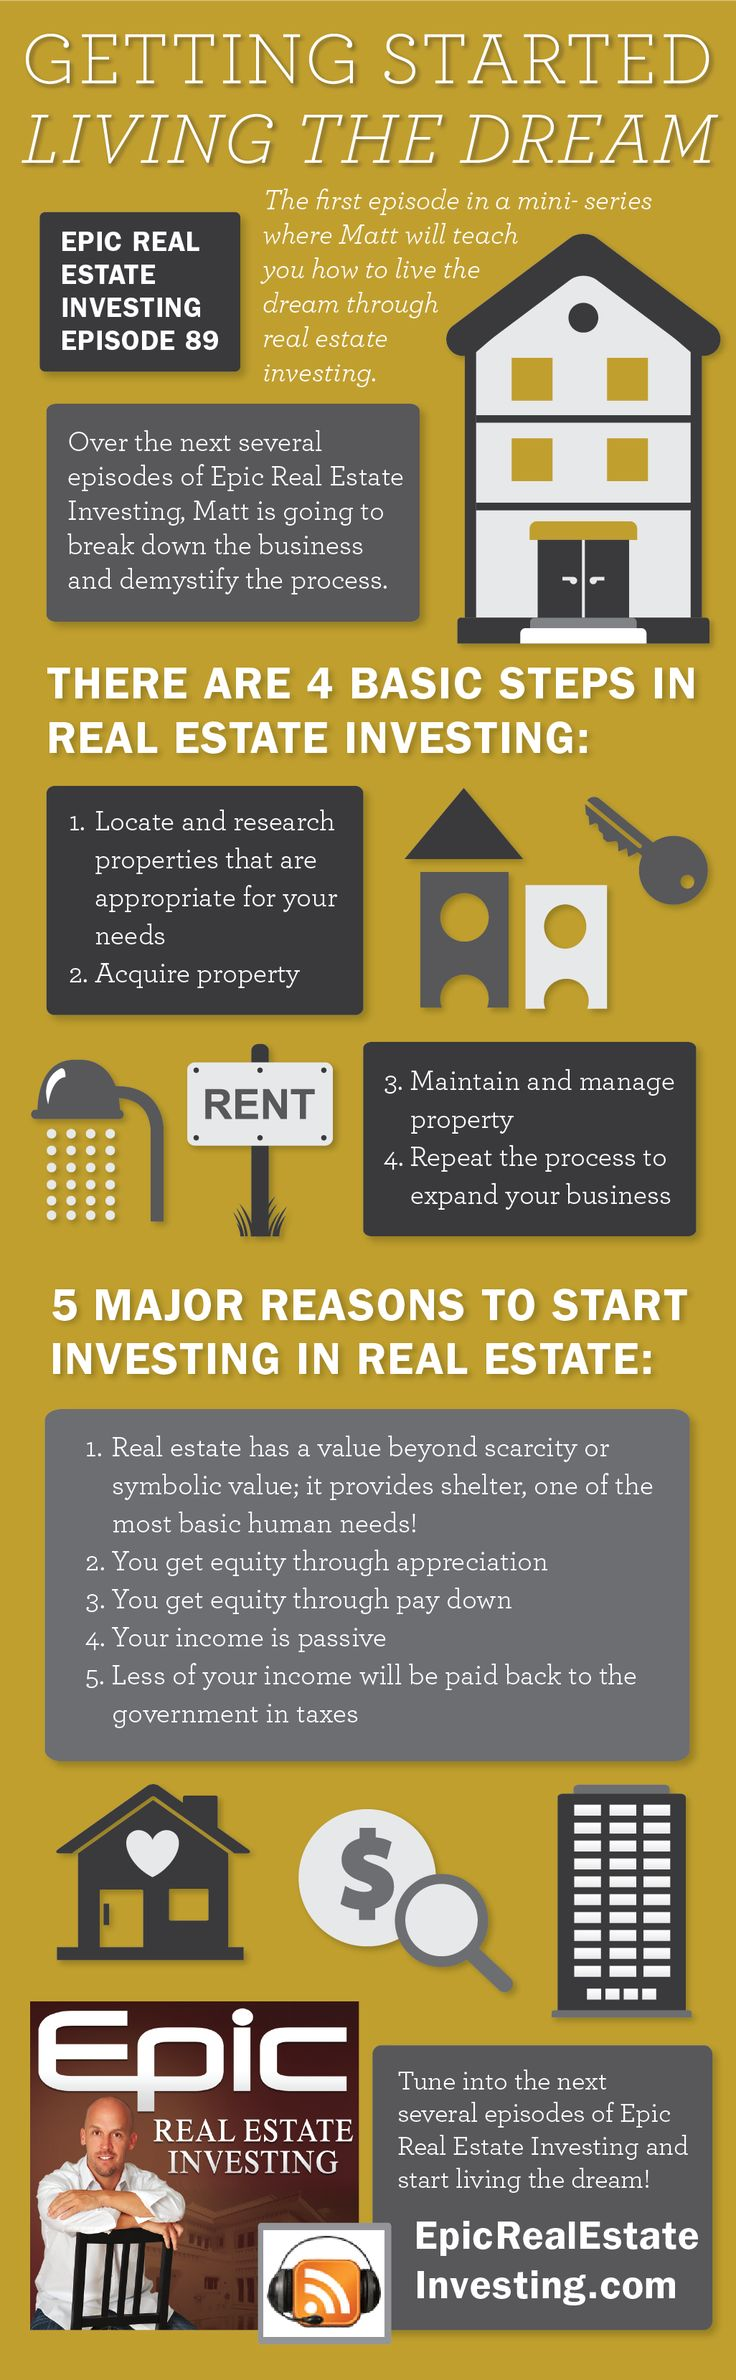 Start Living the Dream: 5 Reasons to Invest in Real Estate (Provide shelter, appreciation, equity, passive income, and tax benefits) | Epic Real Estate Investing #Podcast #Infographic